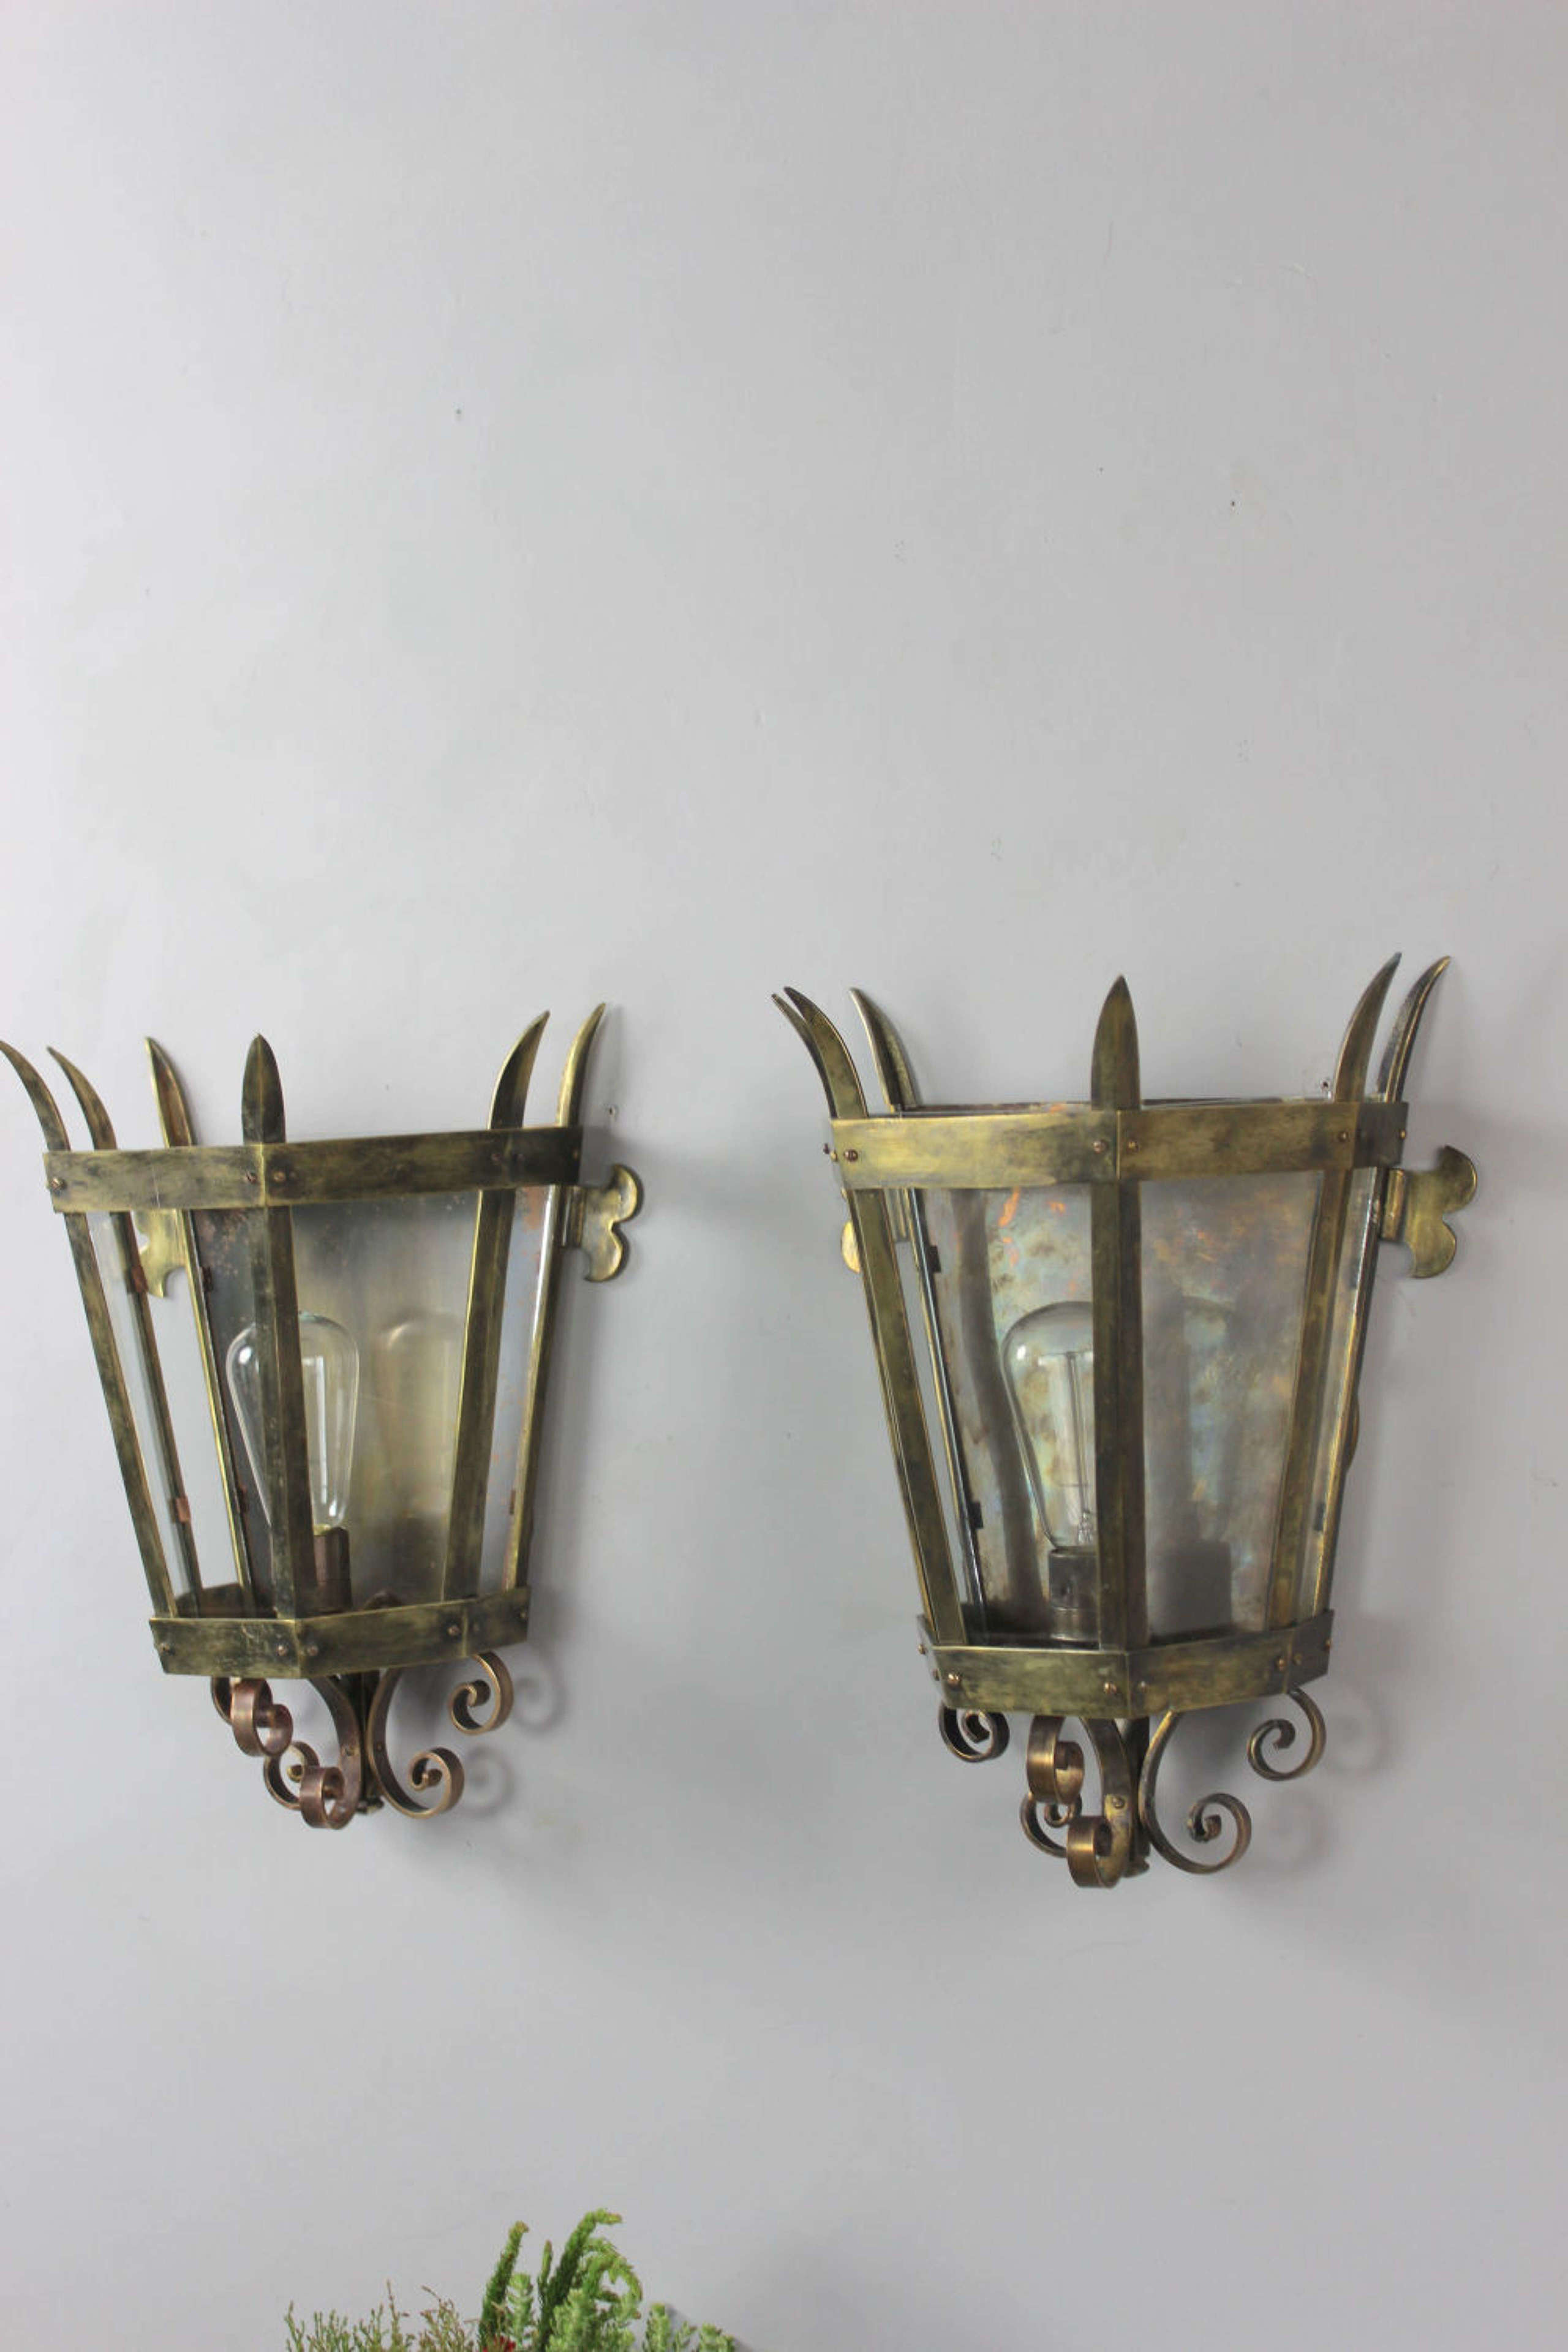 3 pairs of tapered brass Italian wall lanterns in Antique Lanterns